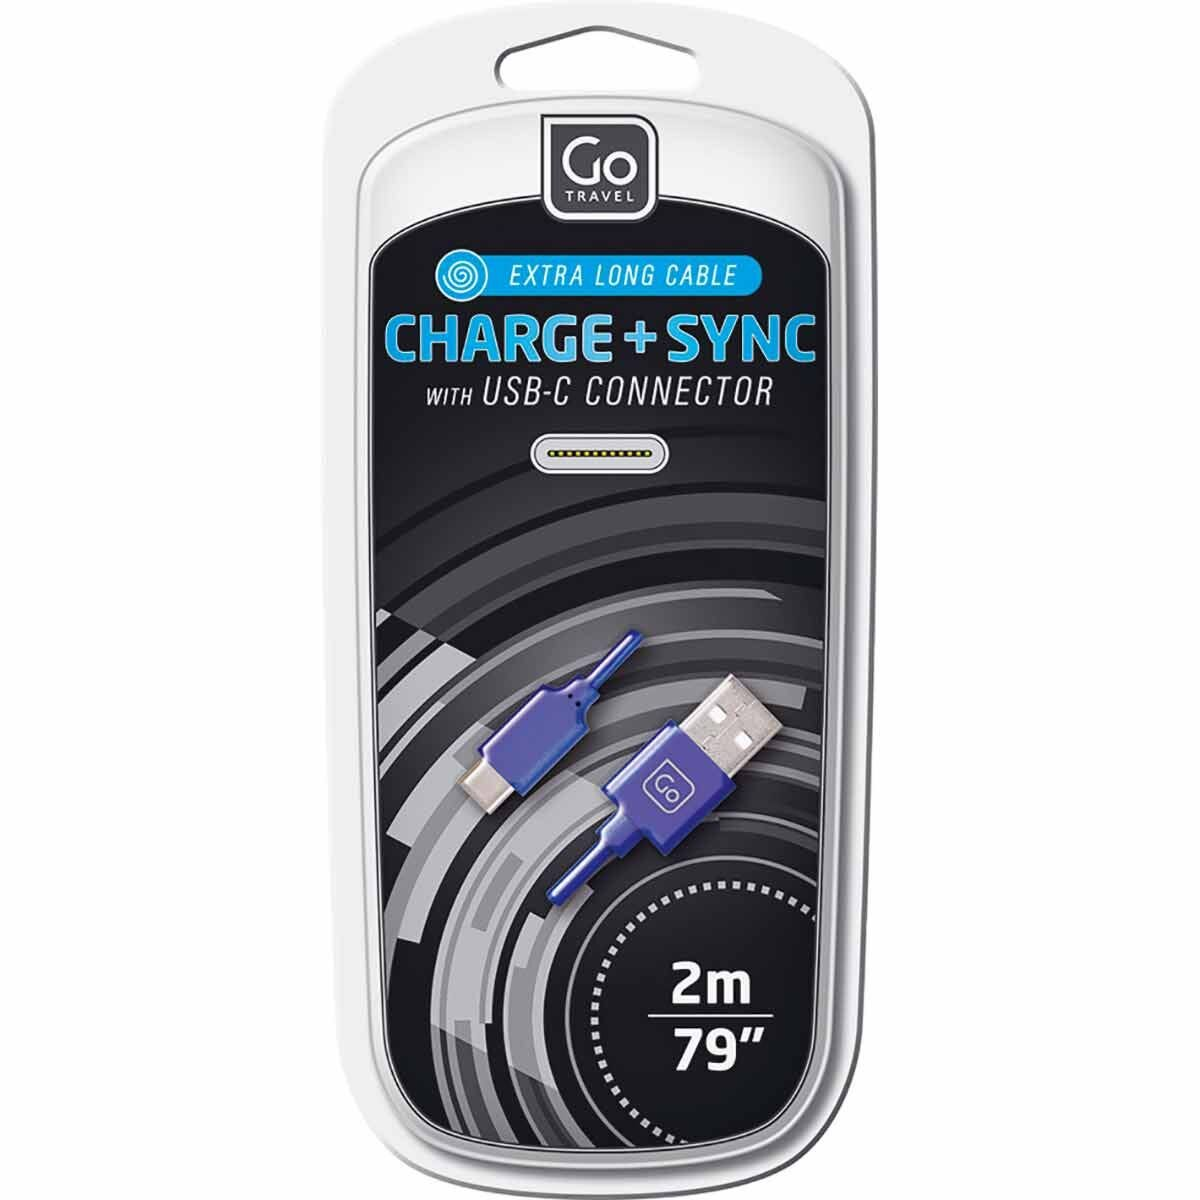 Go Travel Charge and Sync USB-C Cable 2m